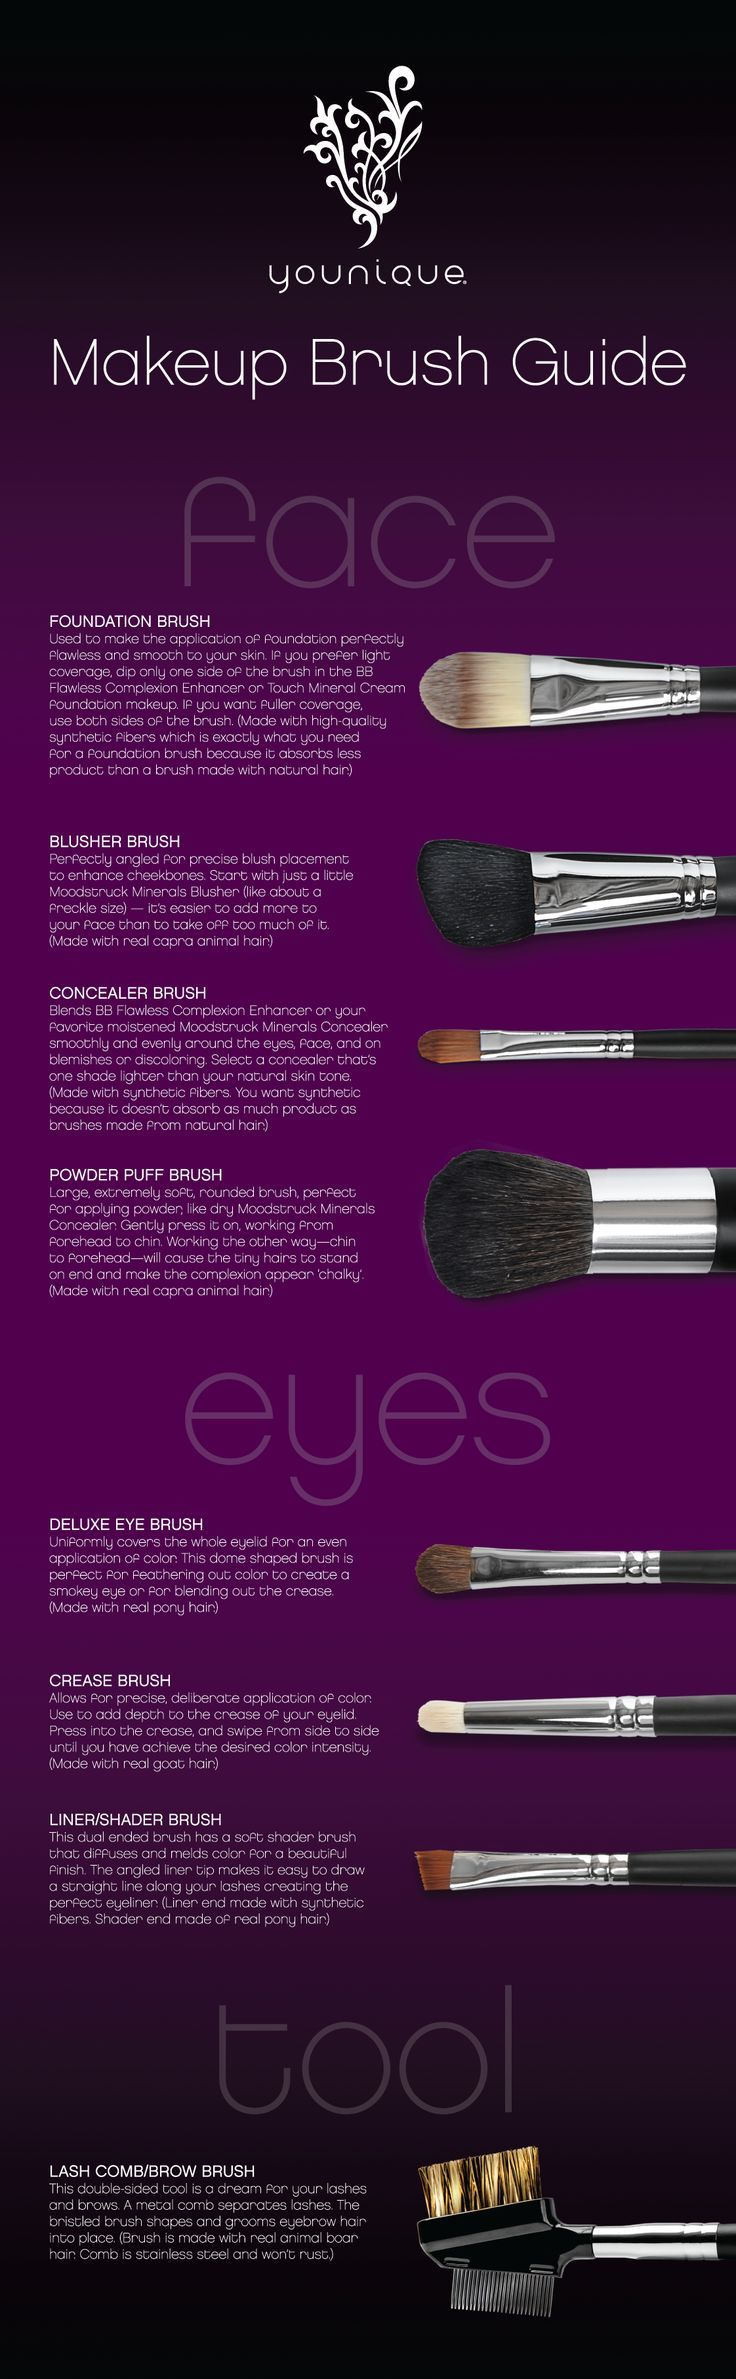 Makeup Brush Guide - Get to know your #brushes